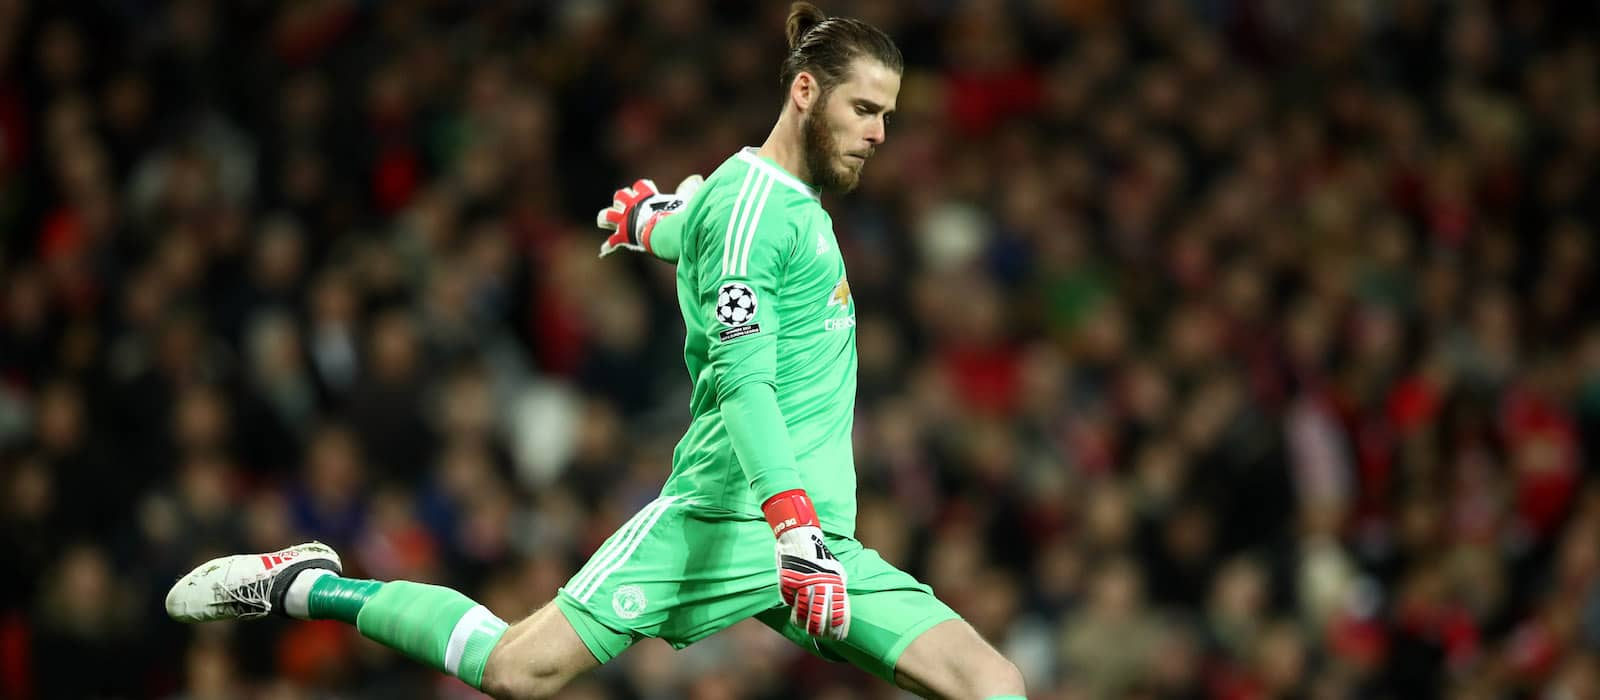 Sam Johnstone: Manchester United's David de Gea is the best goalkeeper in the world